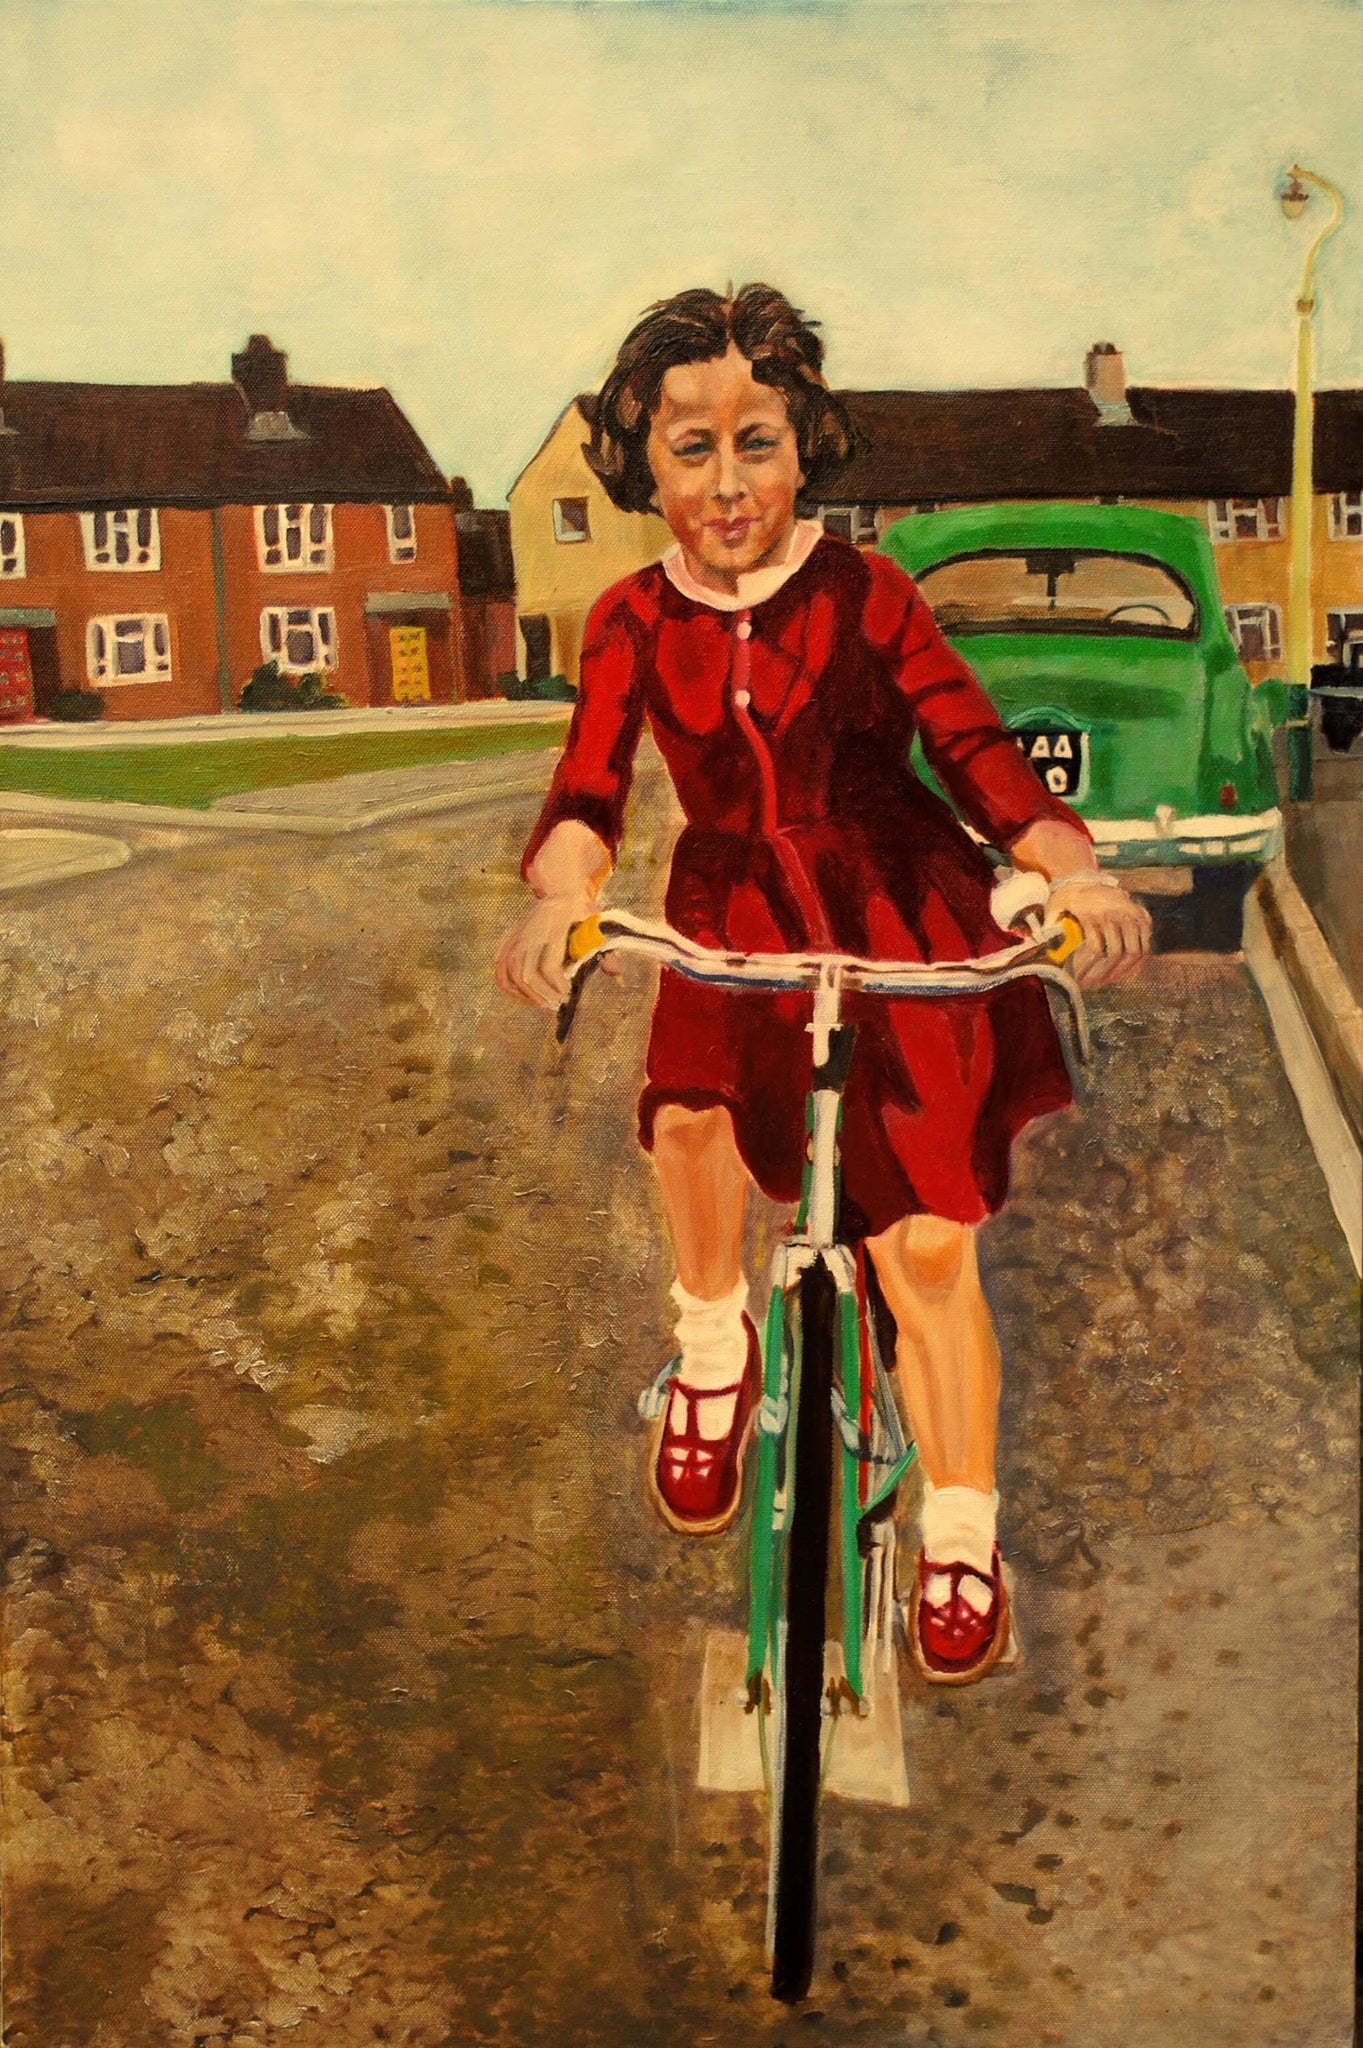 My first bike ride autobiographical portrait in oils on canvas artwork by Stella Tooth.